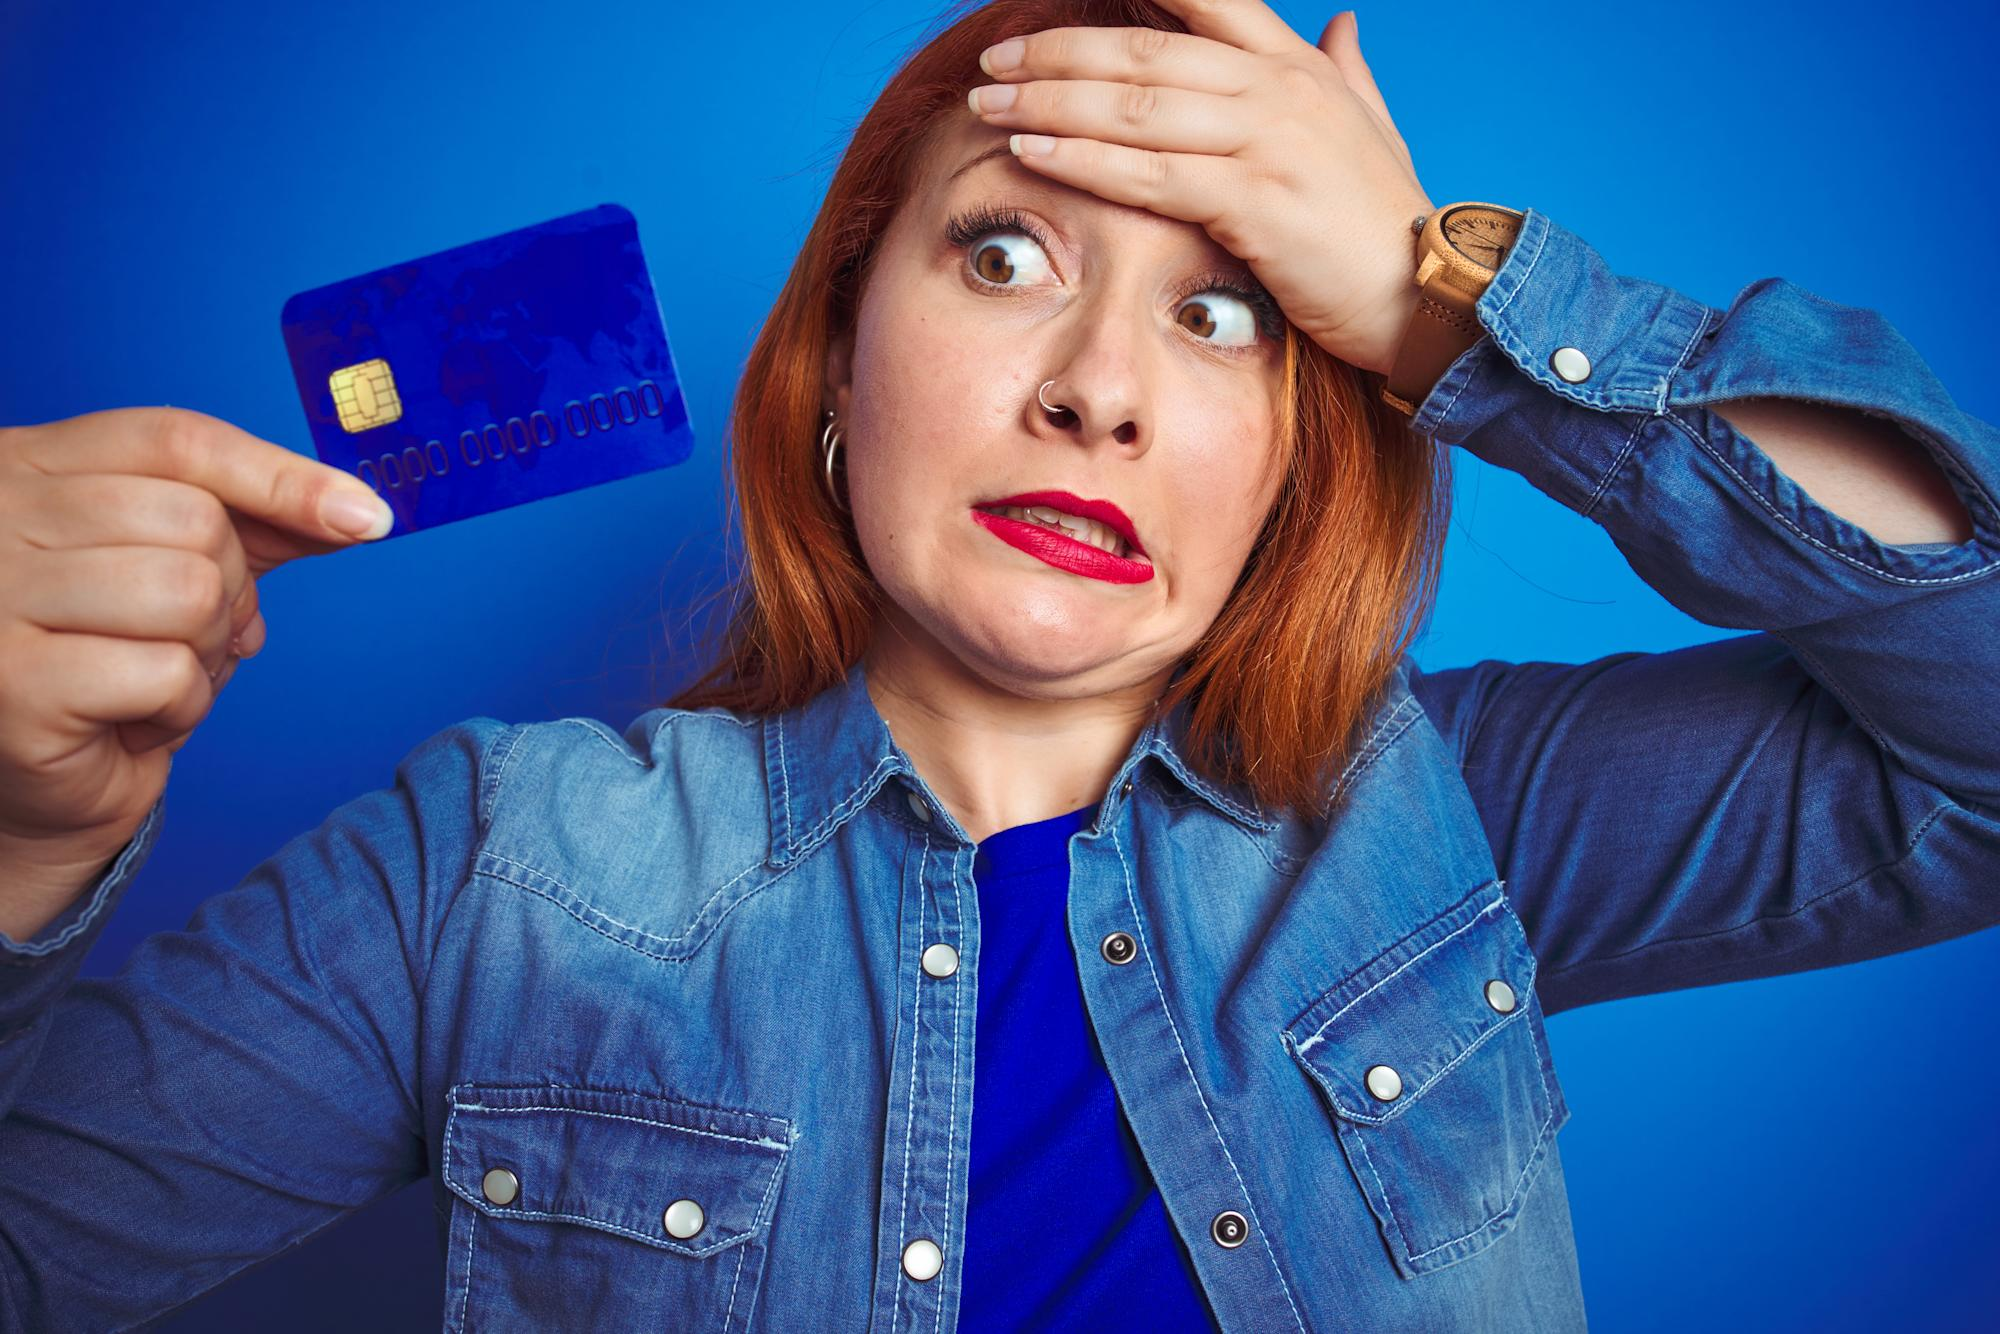 The 6 surprising money moves that will sink your credit score